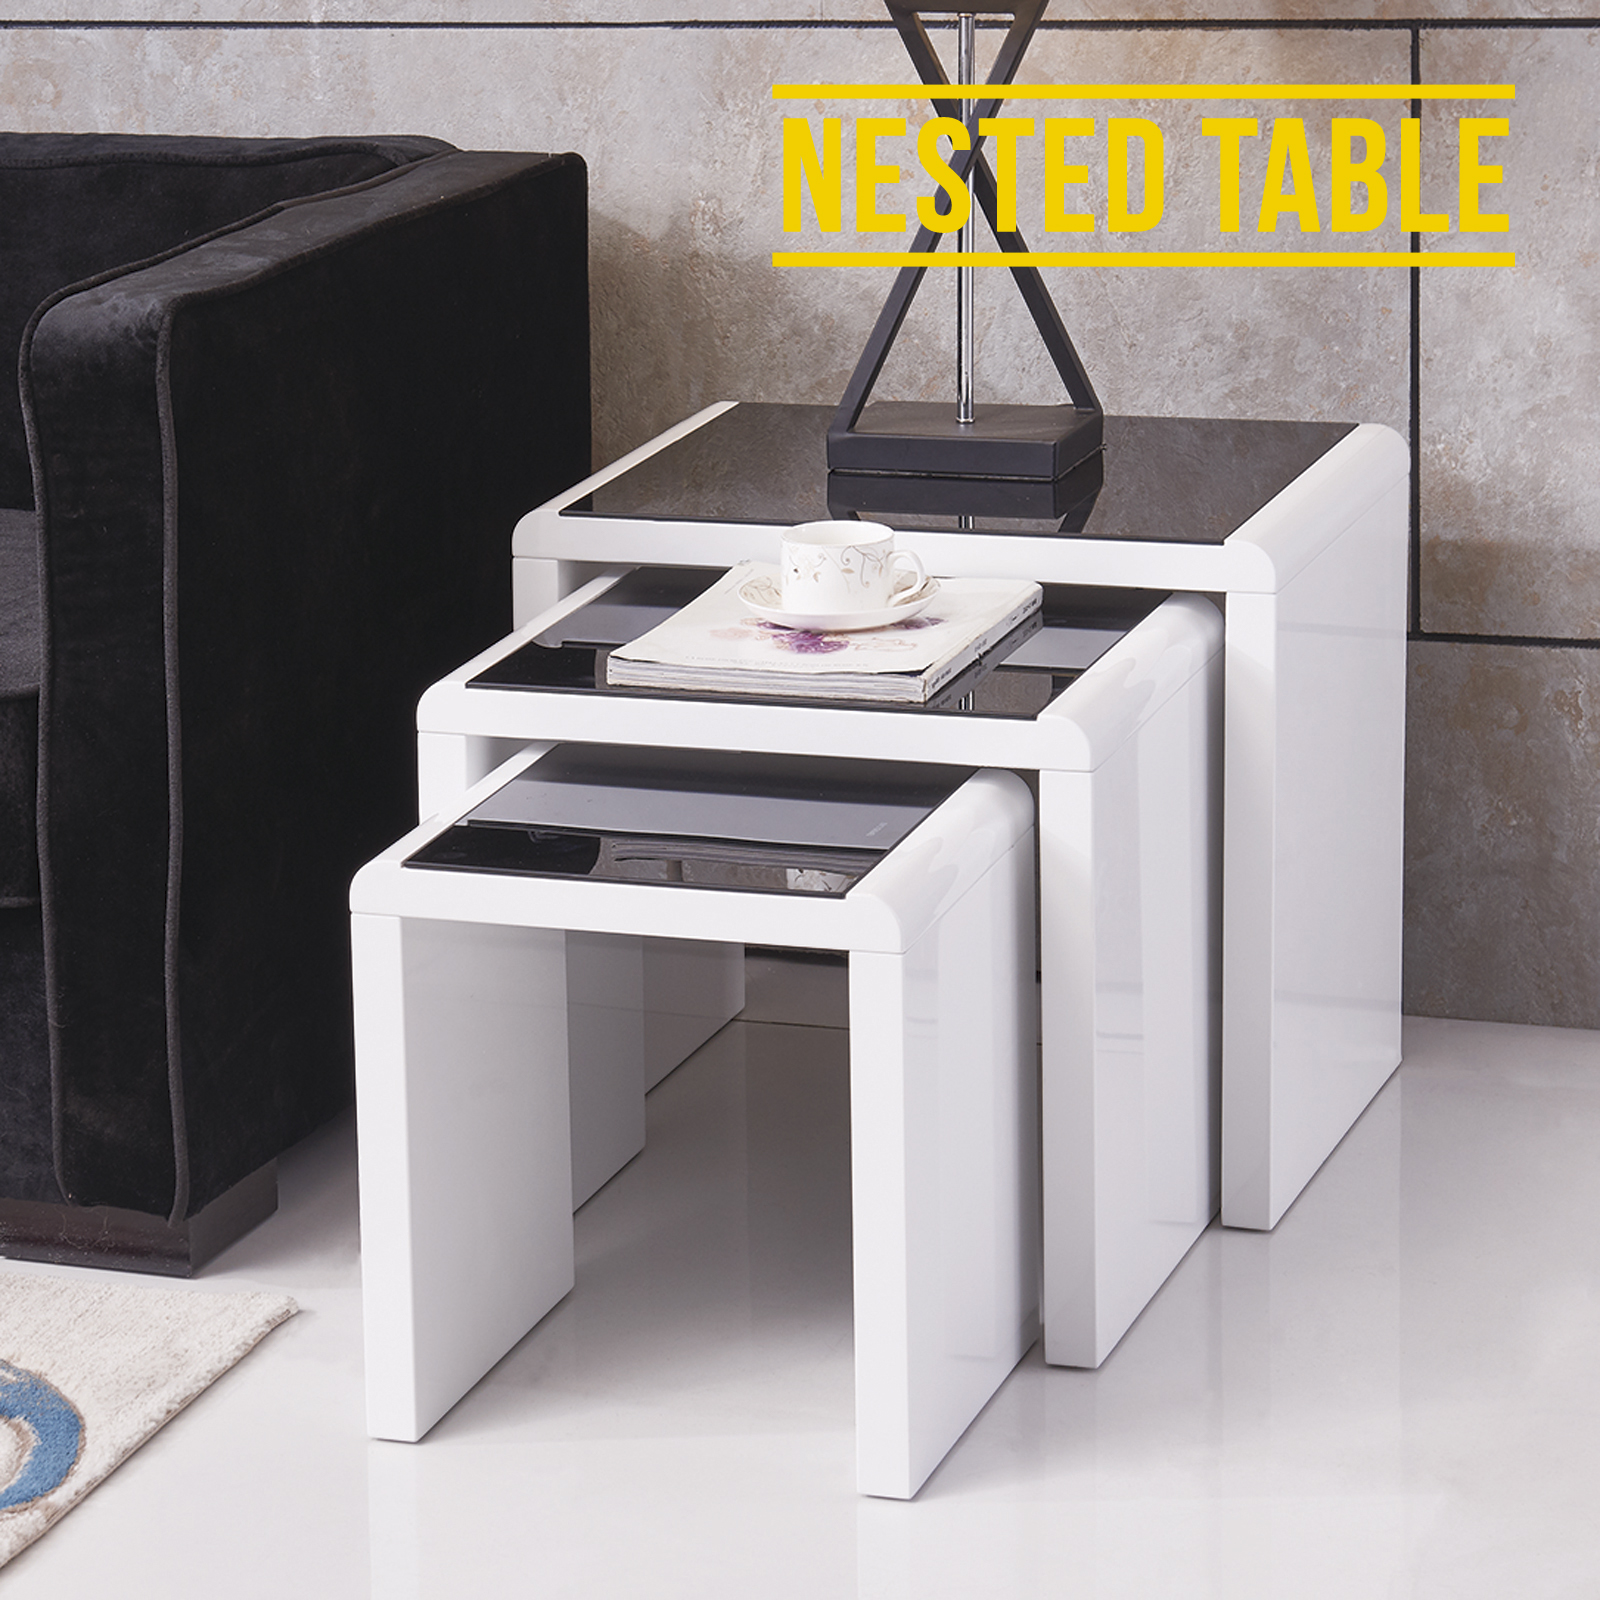 Black Coffee Table Nest: Design High Gloss White + Black Glass Nest Of 3 Coffee